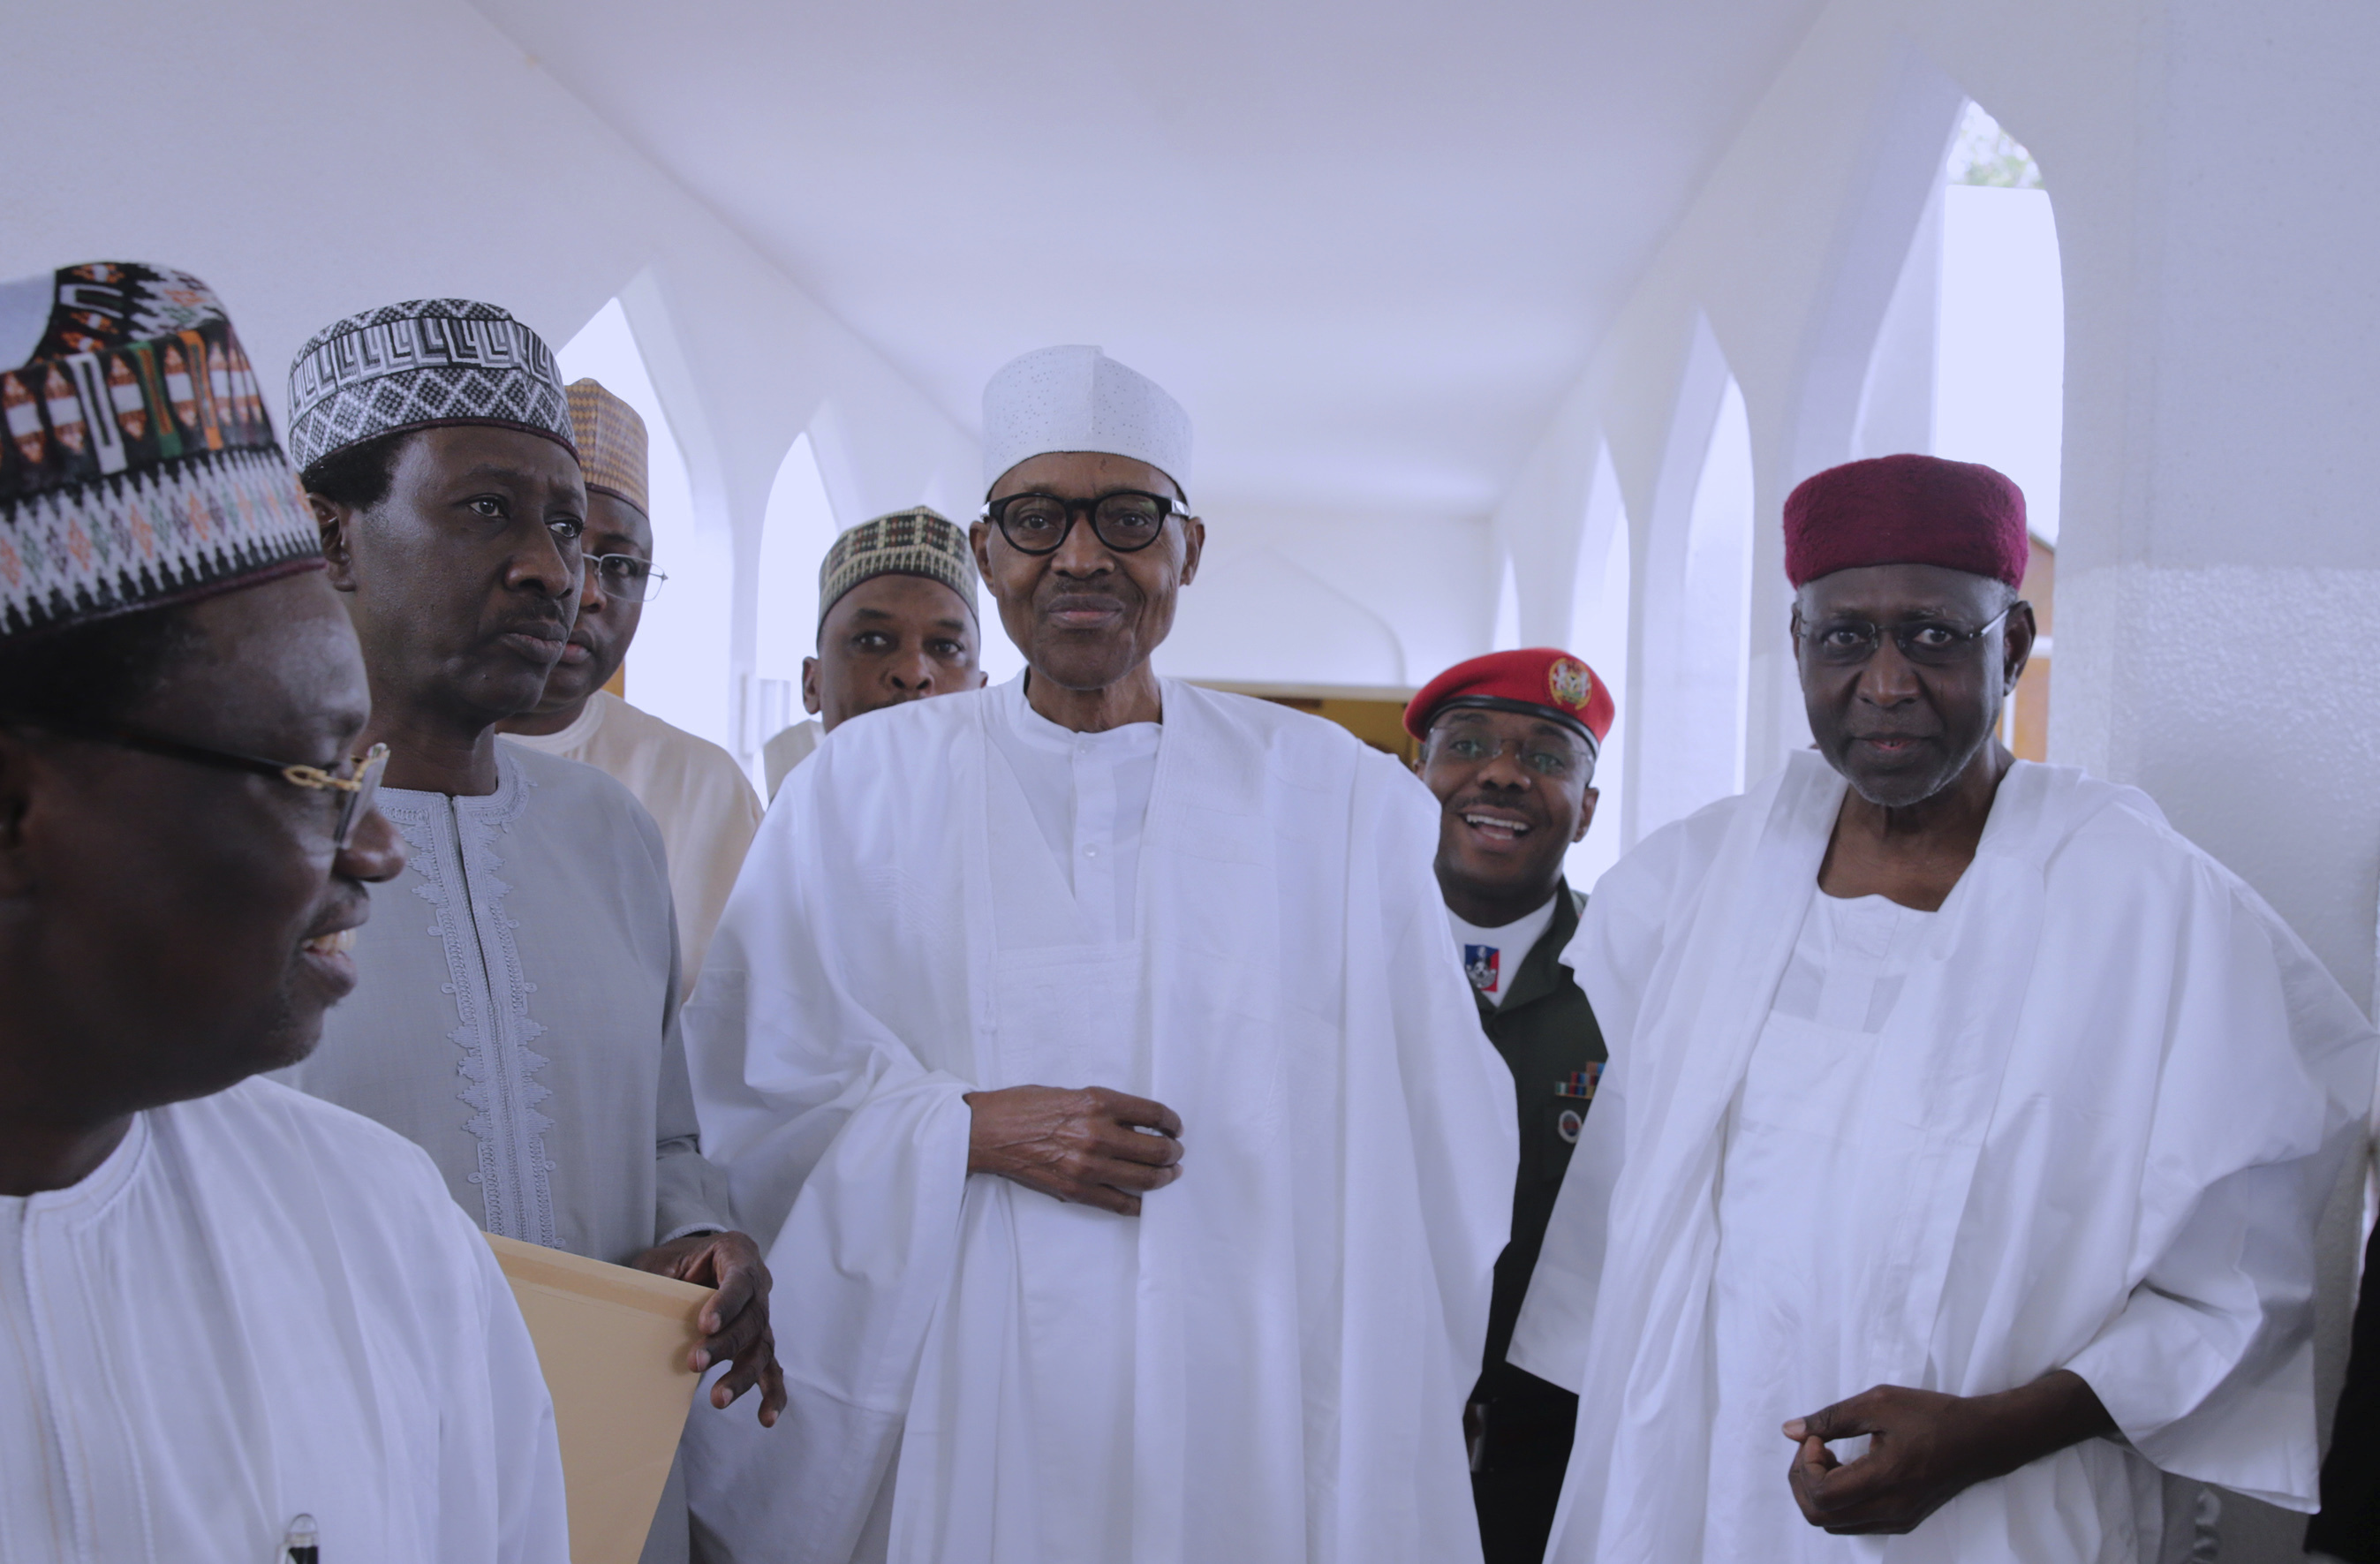 Nigeria's President Muhammadu Buhari with government officials after Friday prayers at the presidential palace in Abuja, Nigeria on May 5, 2017. Nigeria's 74-year old president has emerged to attend Friday prayers after missing a number of public engagements and three straight weekly cabinet meetings because of poor health.